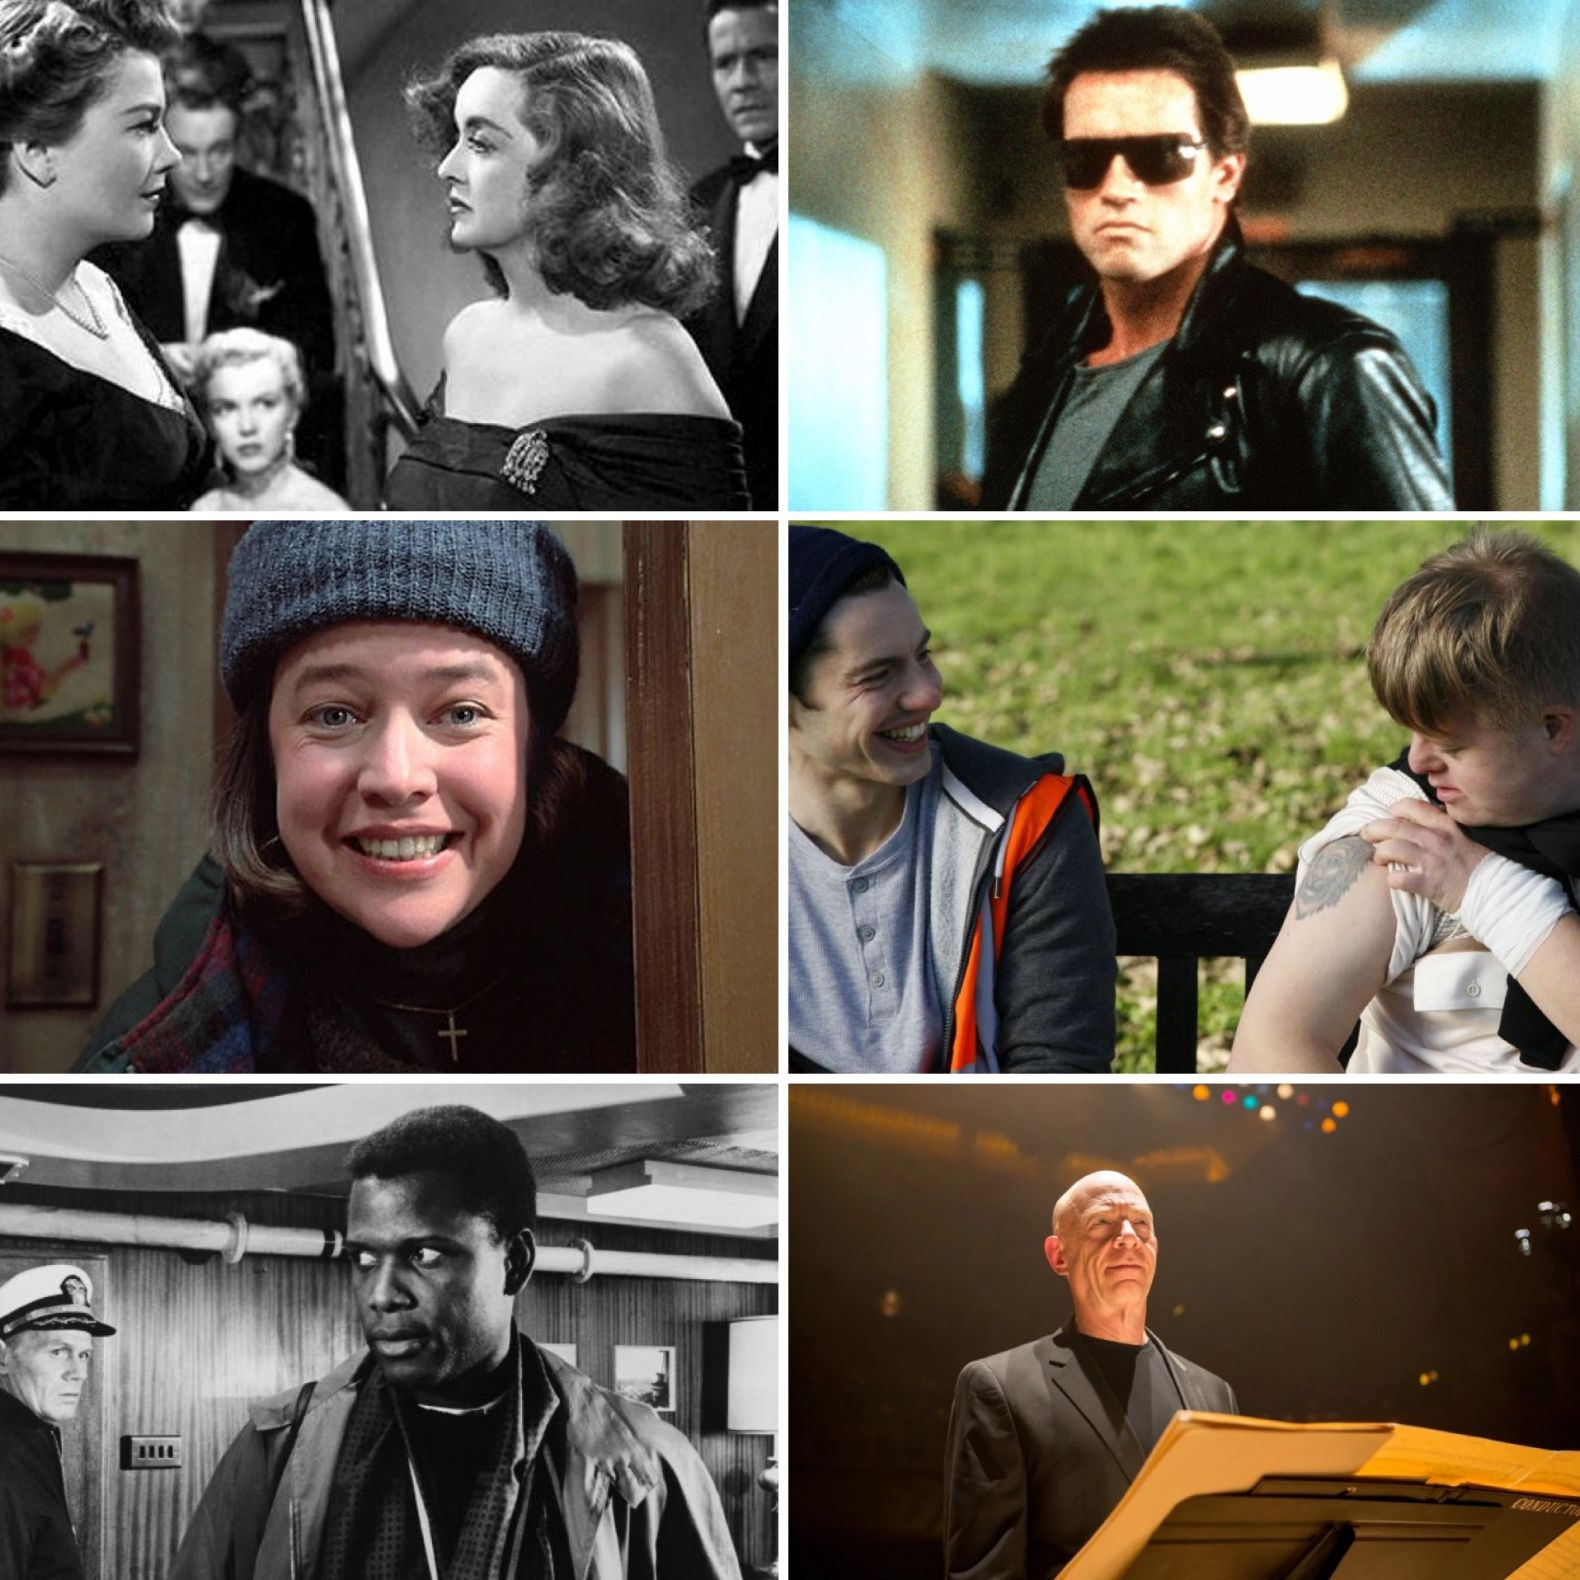 Duke Box #52: Our Guide to the Best Films on TV